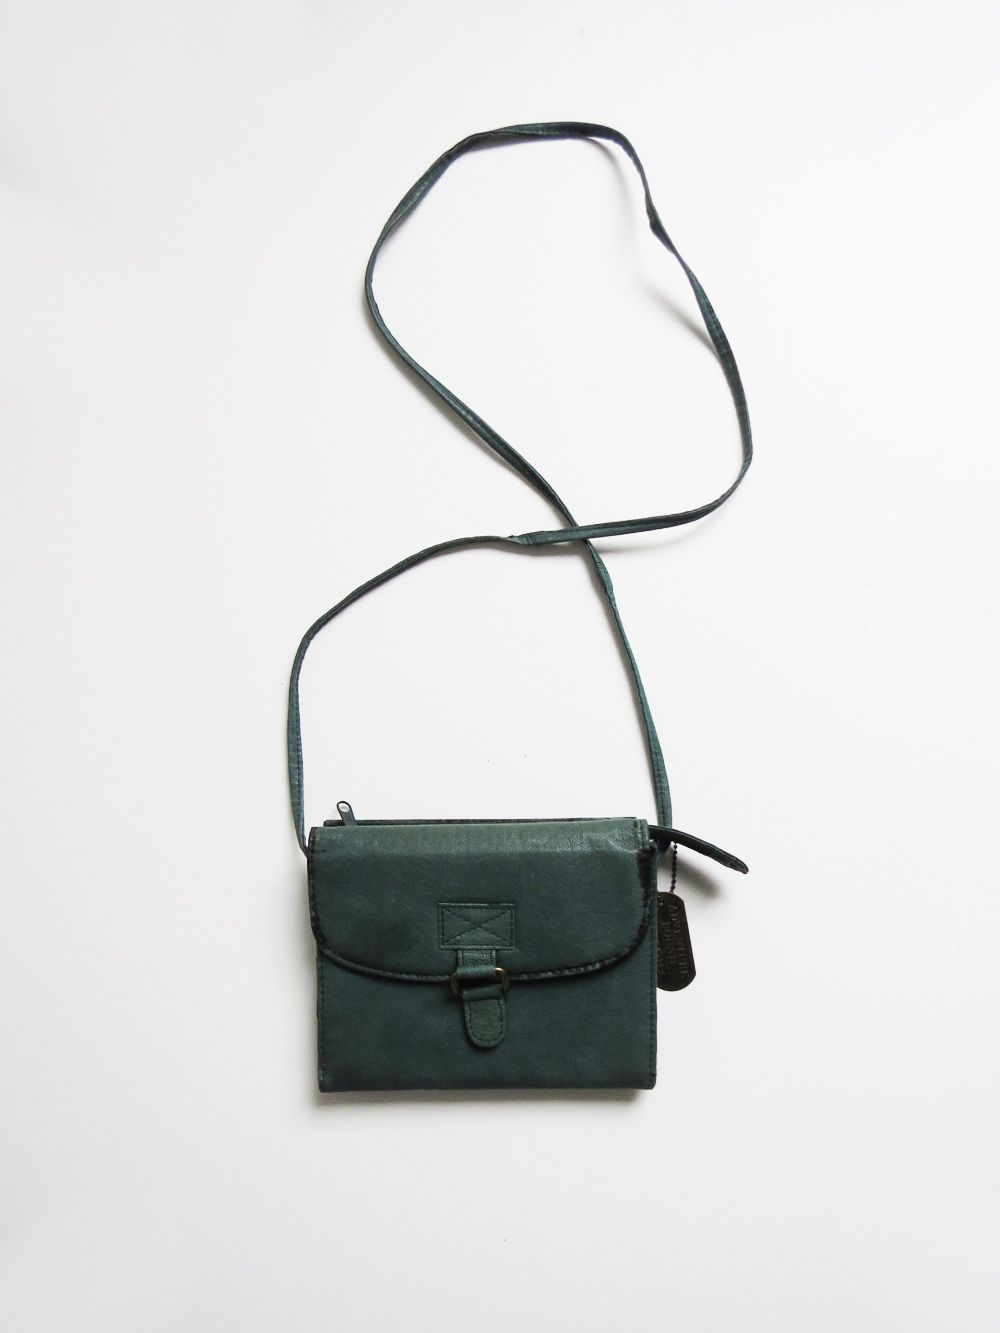 Teal Cross Body Purse // 1990's Leather Purse SOLD